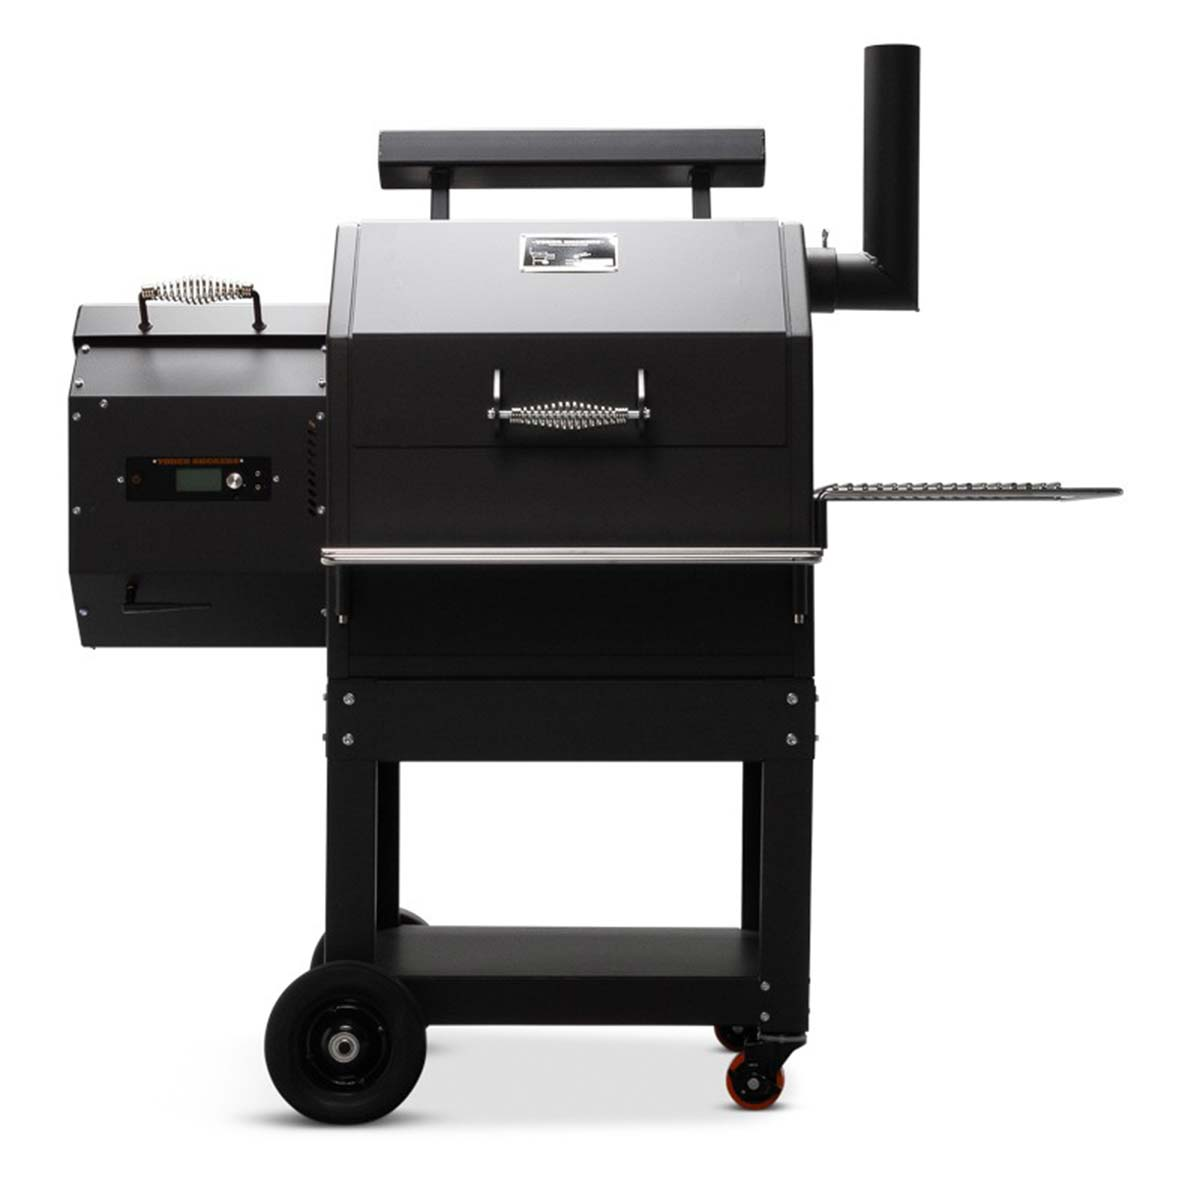 yoder-smokers-ys480s-pellet-grill-acs-wifi-5